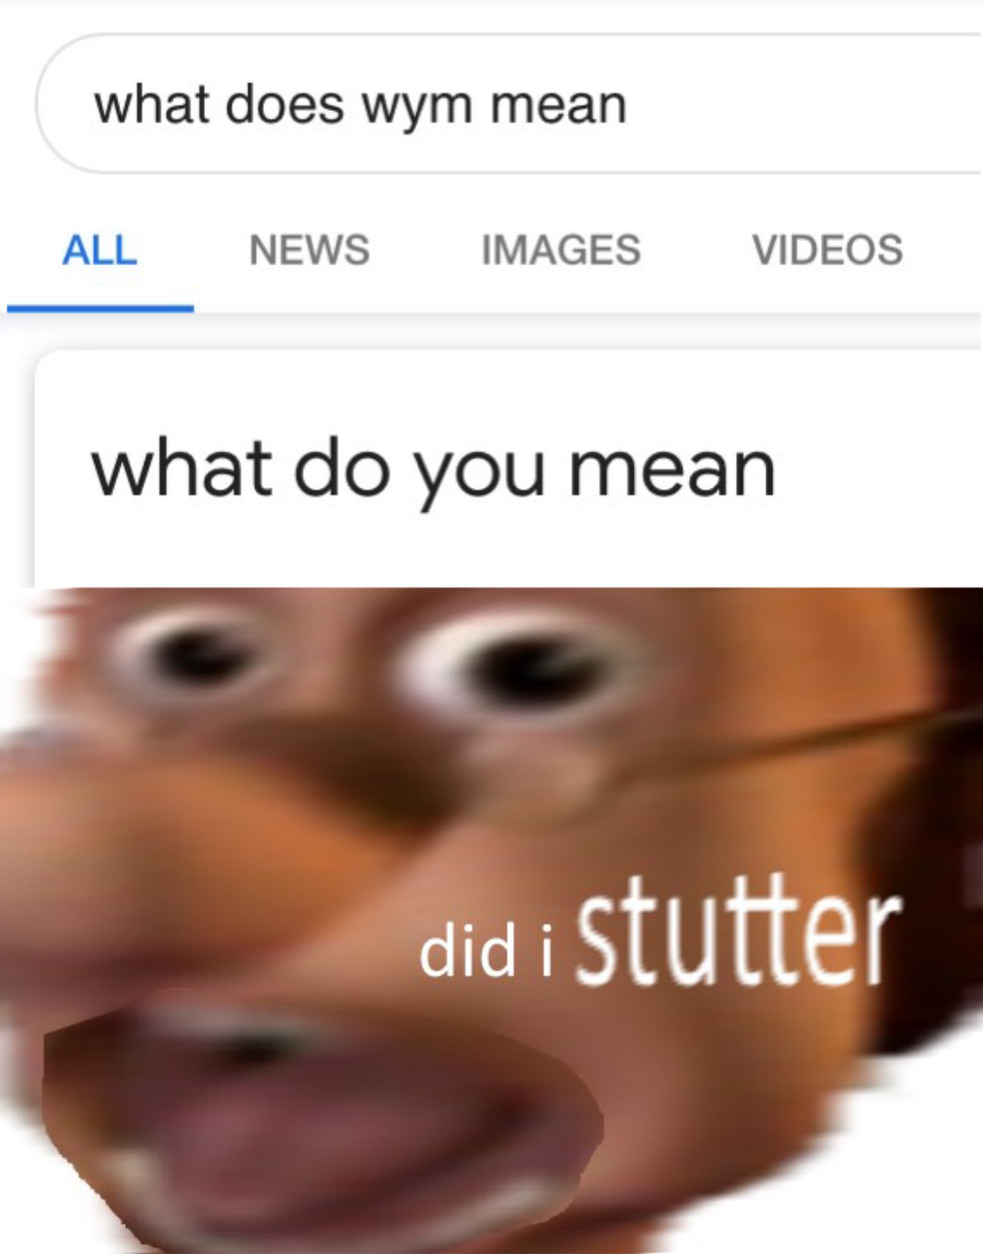 DID I STUTTER! - meme